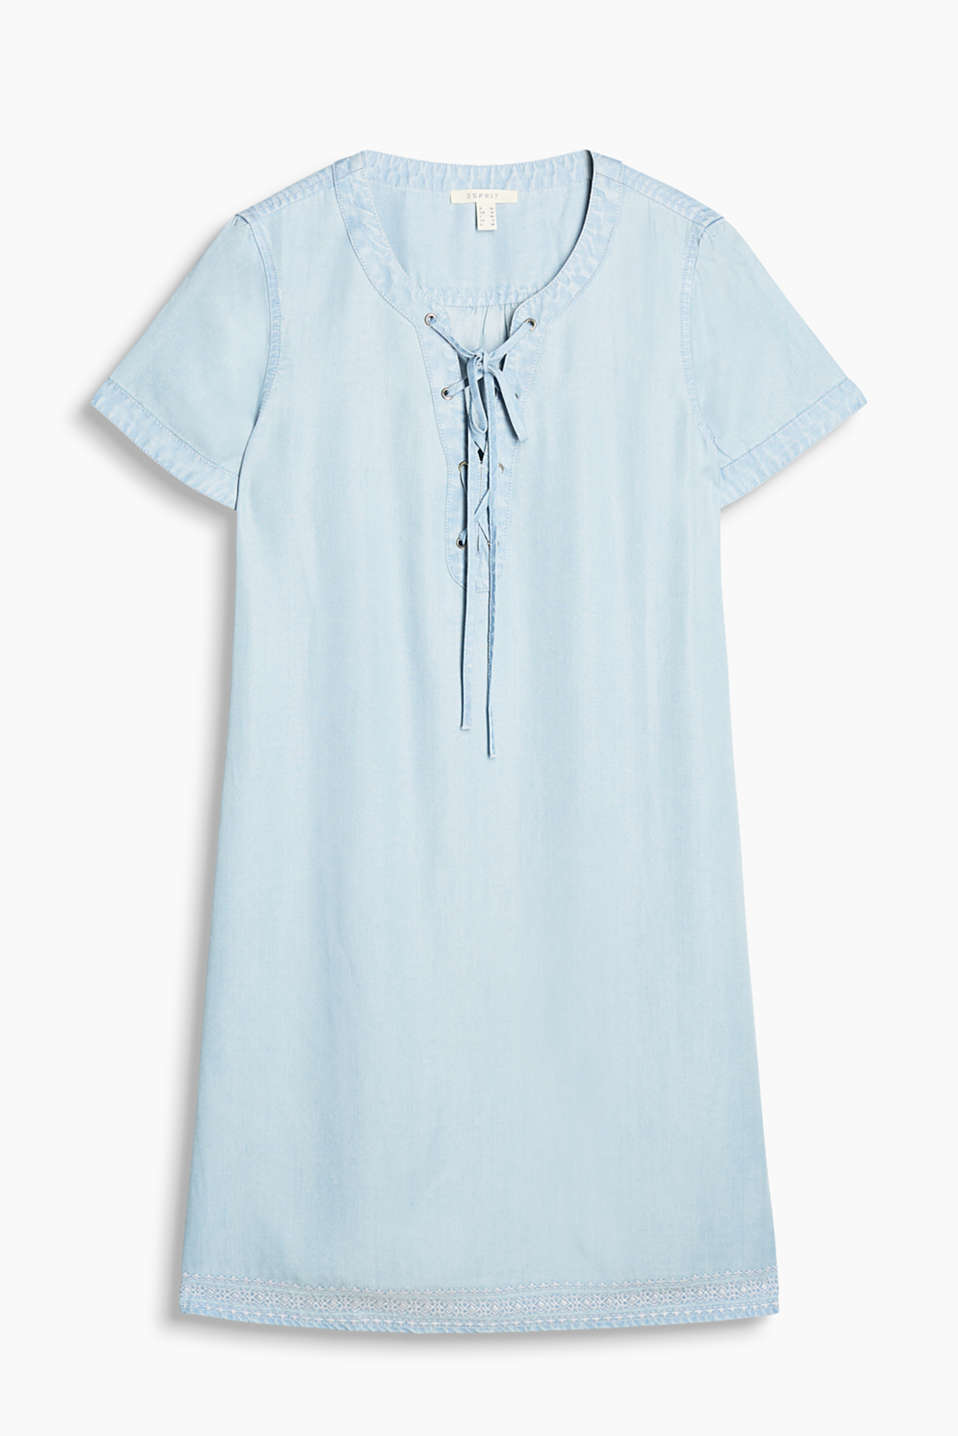 Flowing dress in a summery denim look with a laced neckline and an embroidered hem